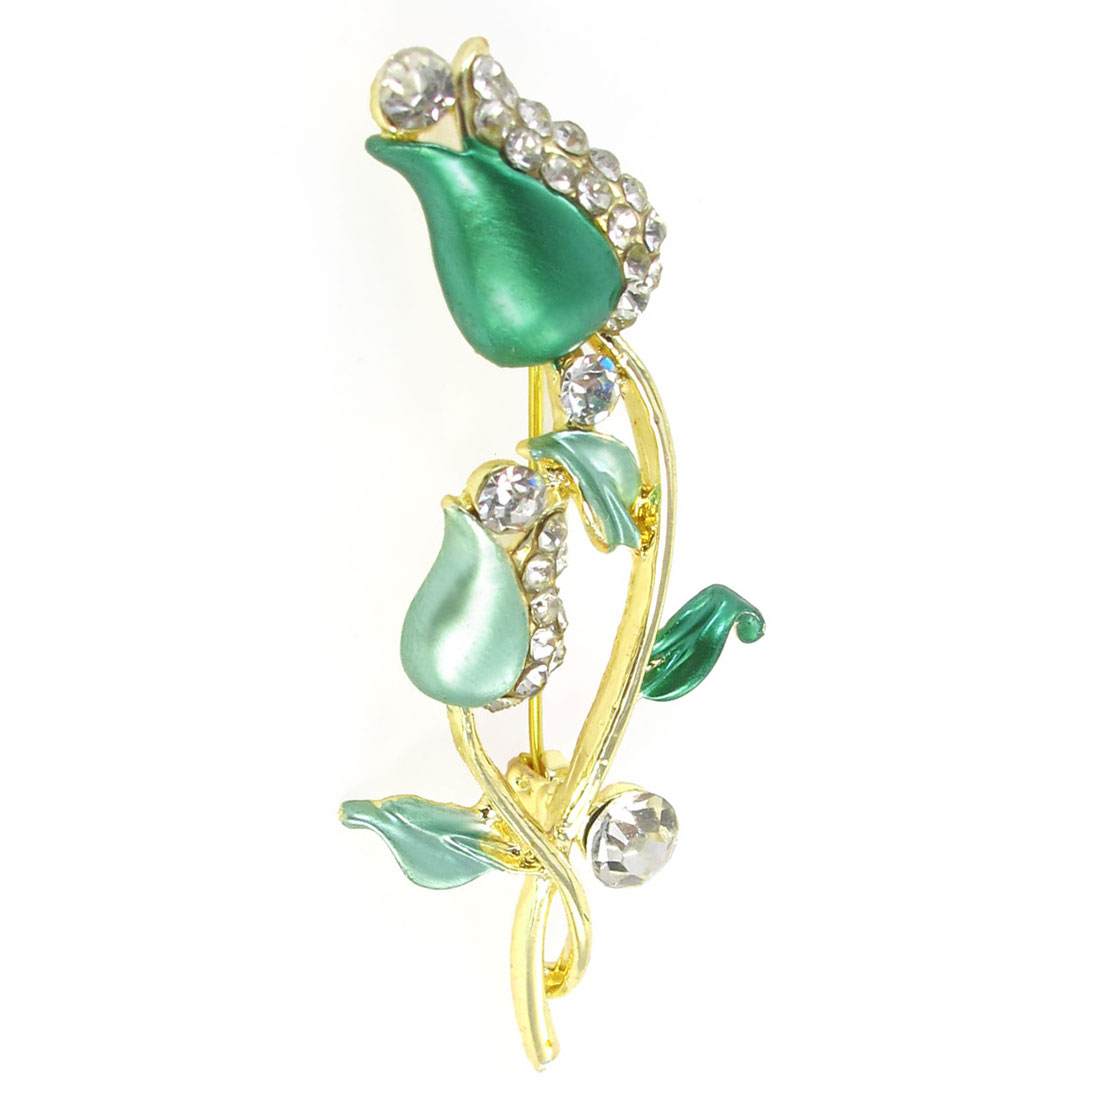 Lady Glittery Rhinestone Detail Green Floral Design Safety Pin Brooch Broach